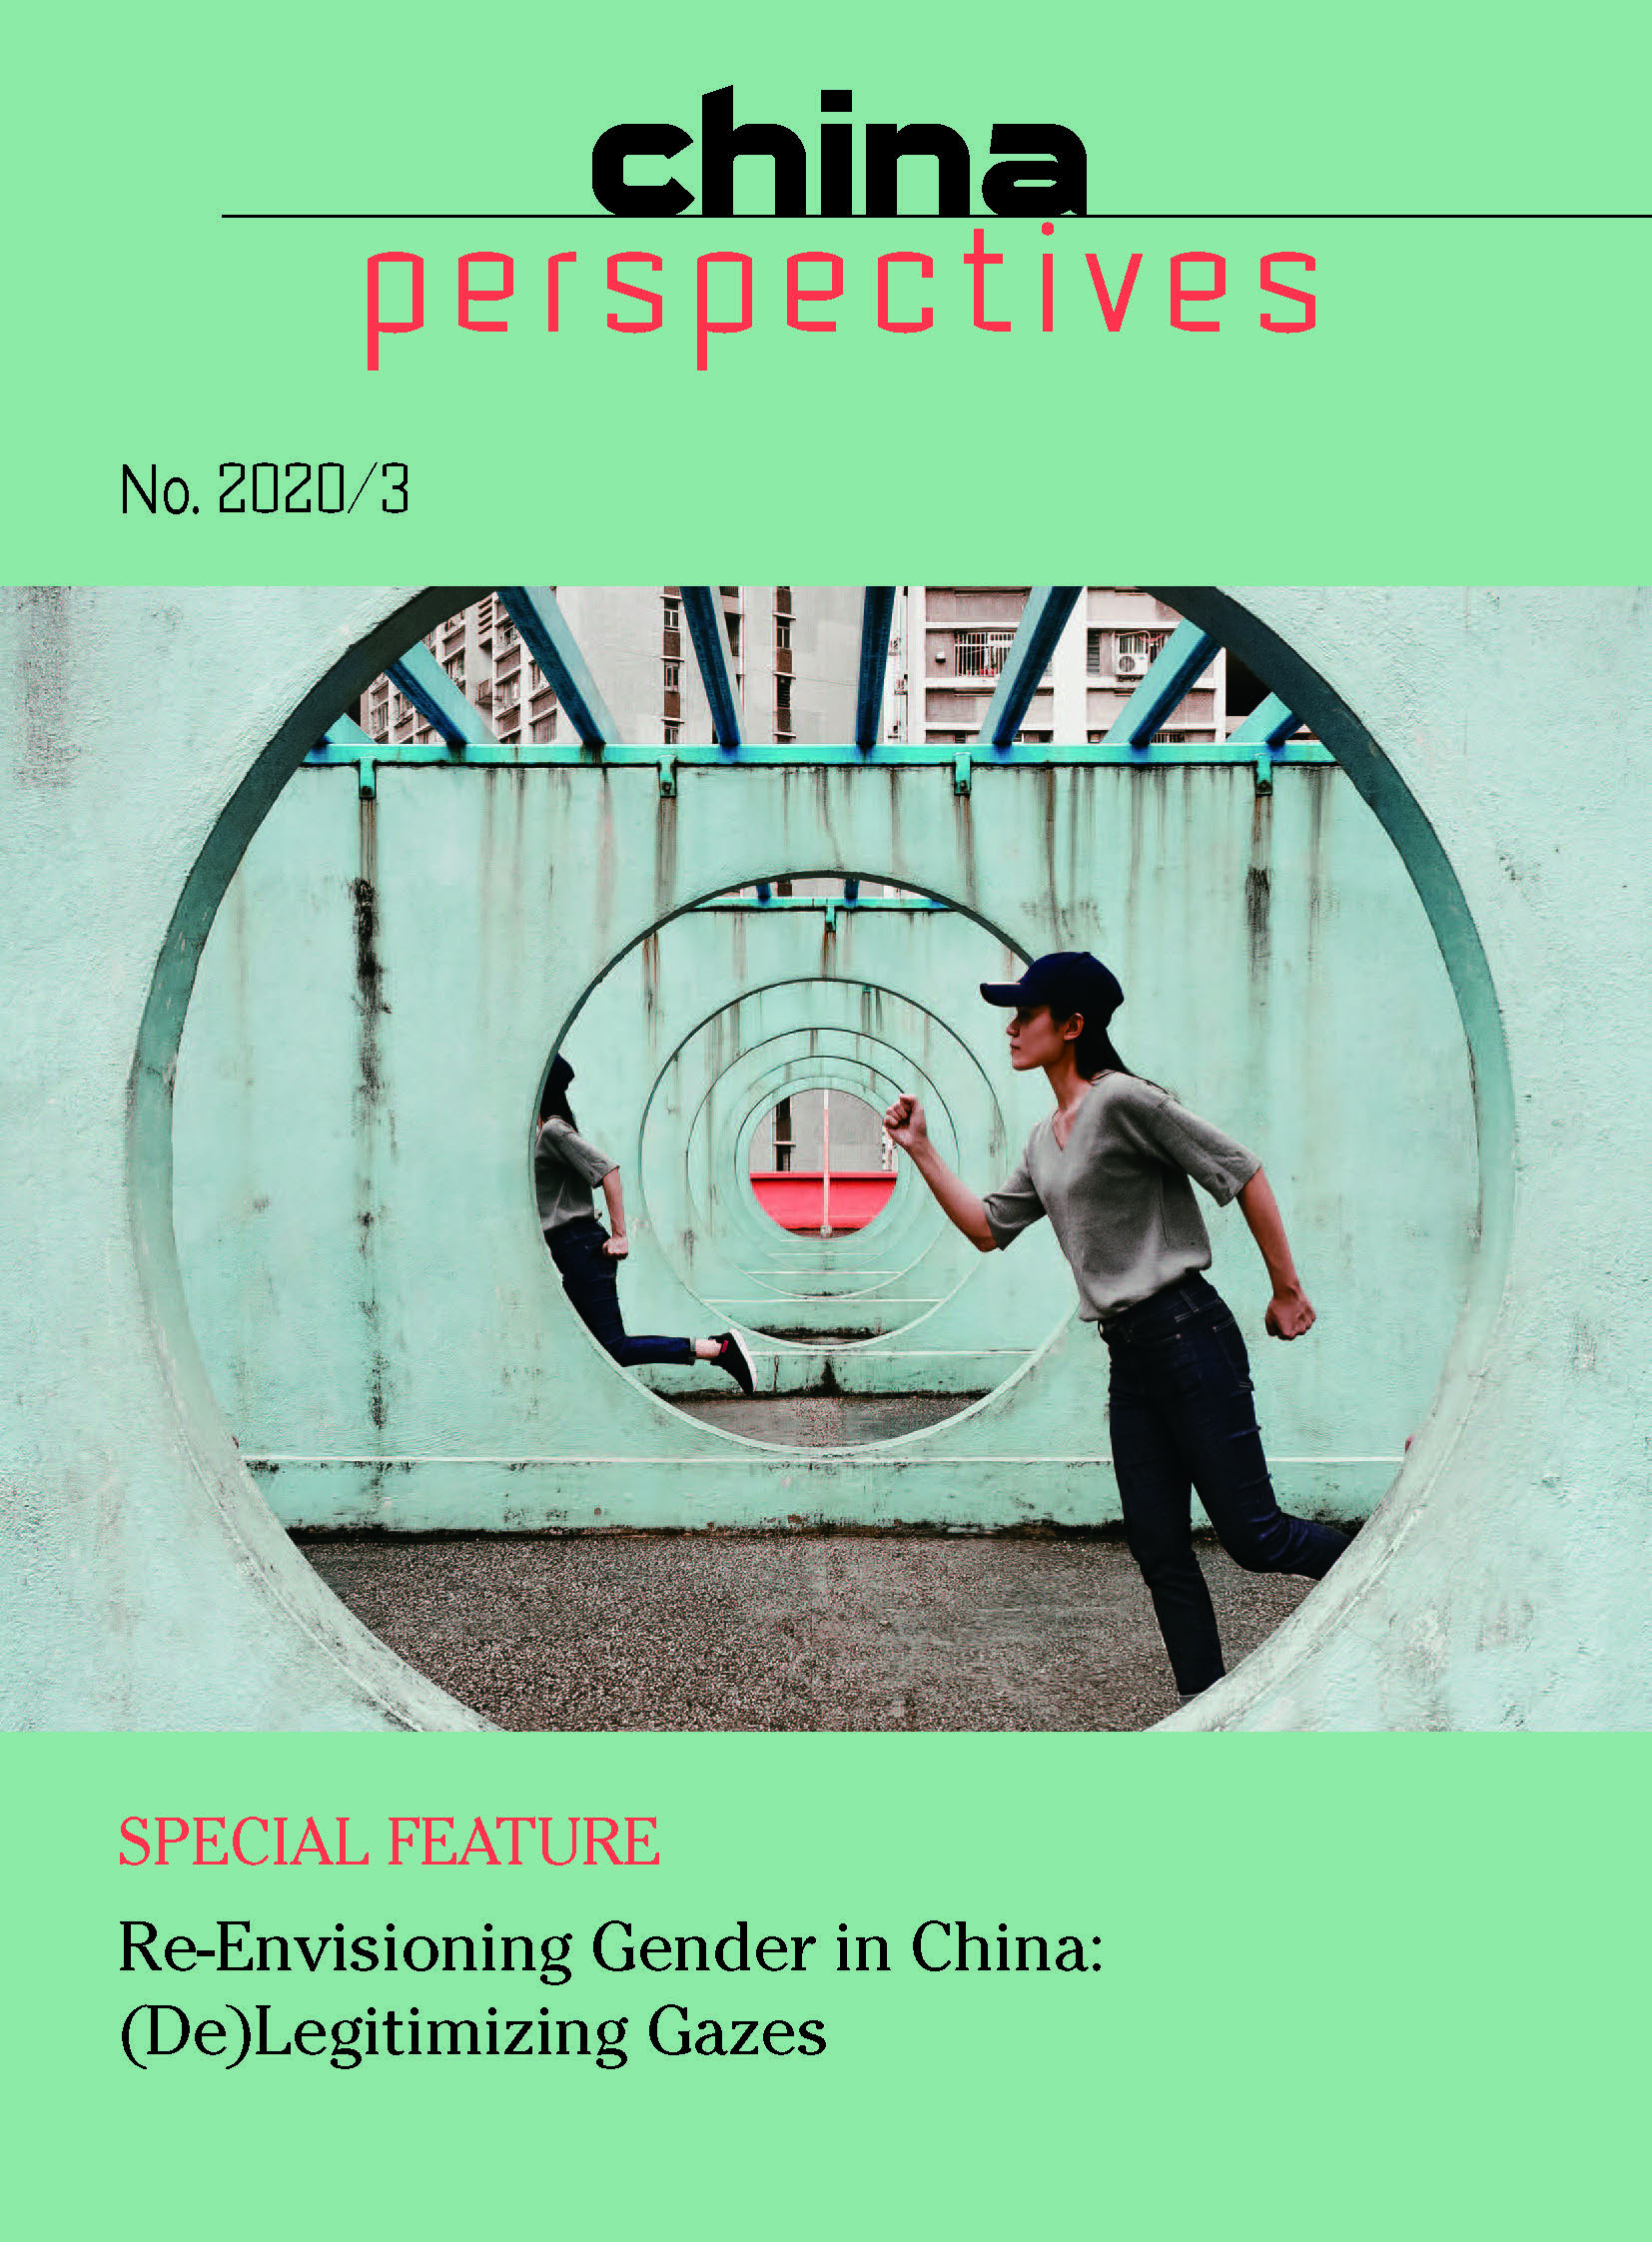 China Perspectives 2020/3 | Re-Envisioning Gender in China: (De)Legitimizing Gazes